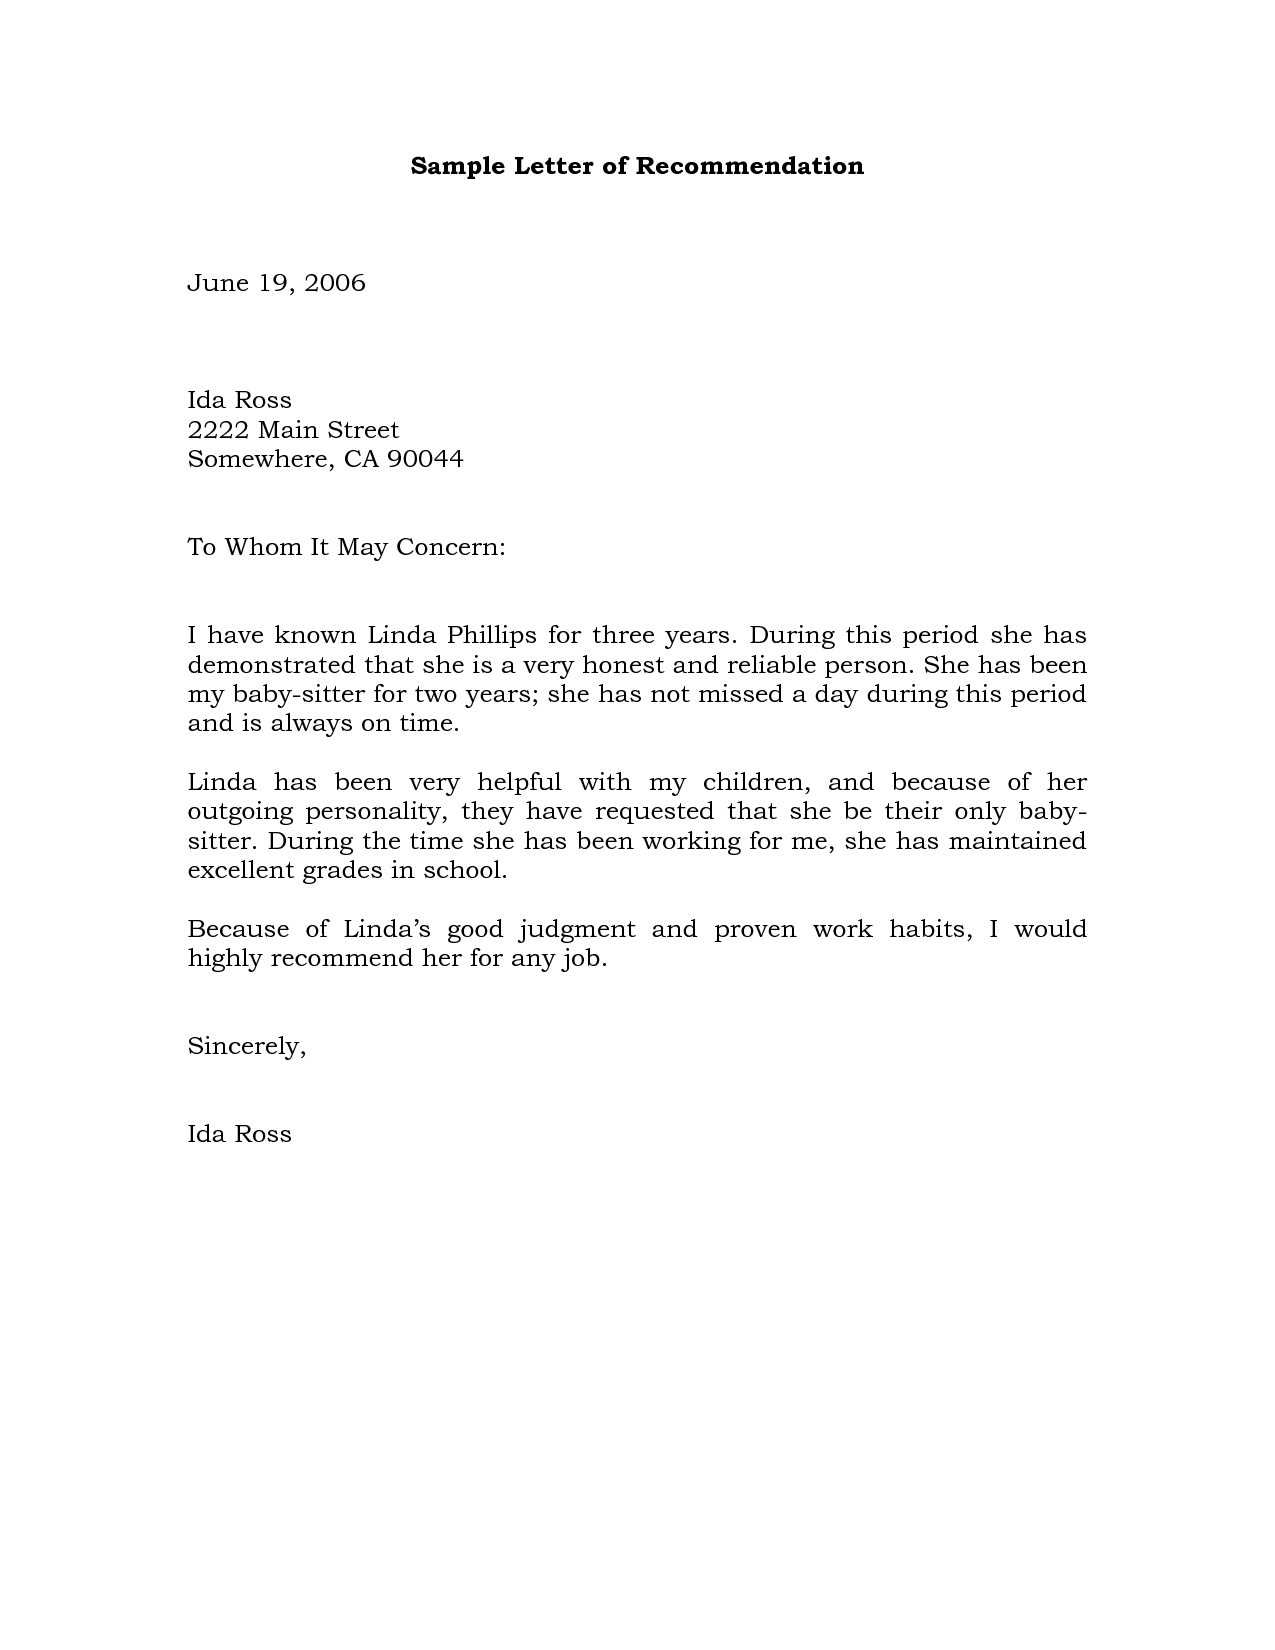 Company Business Reference Letter Template - Sample Re Mendation Letter Example Projects to Try